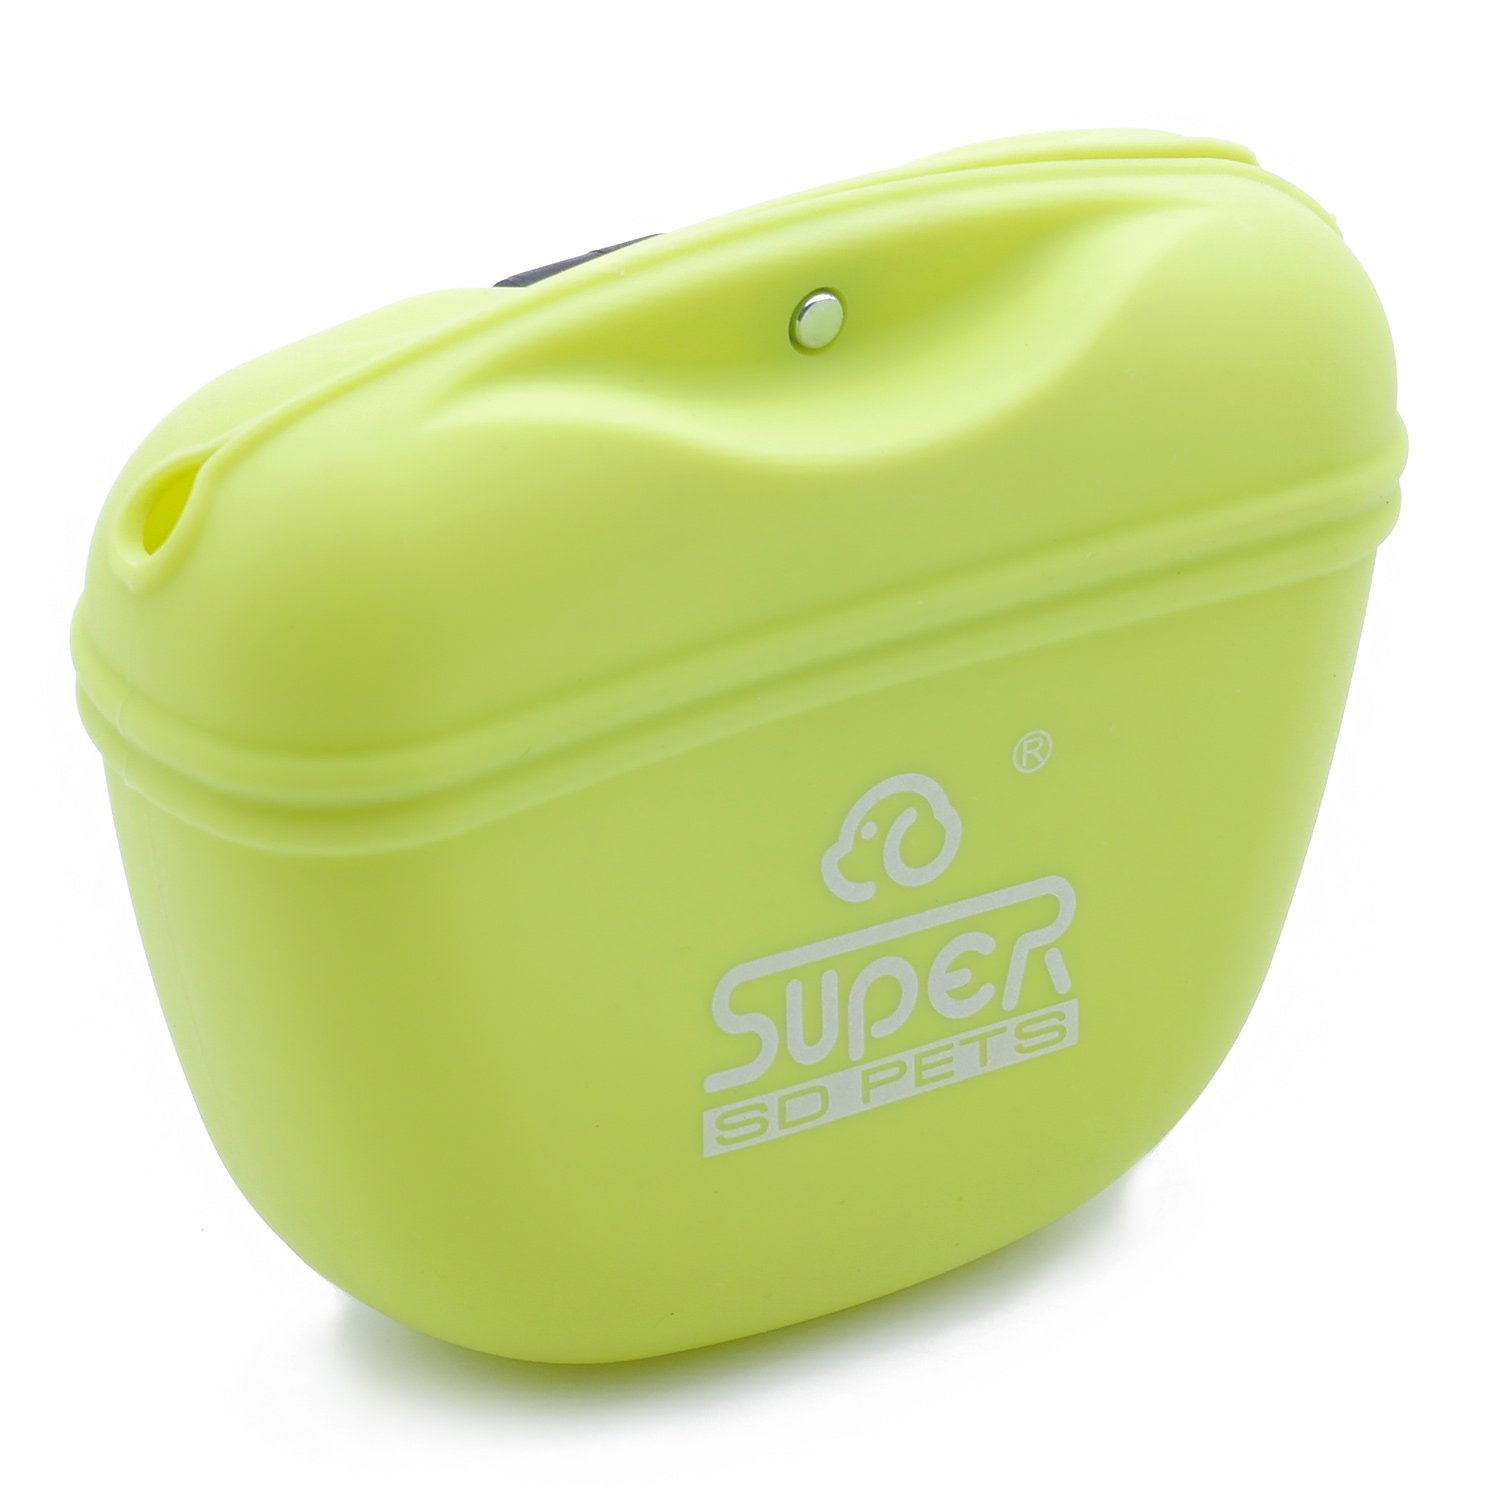 SuperDesign Silicone for Pets Pooch Pouch M Green